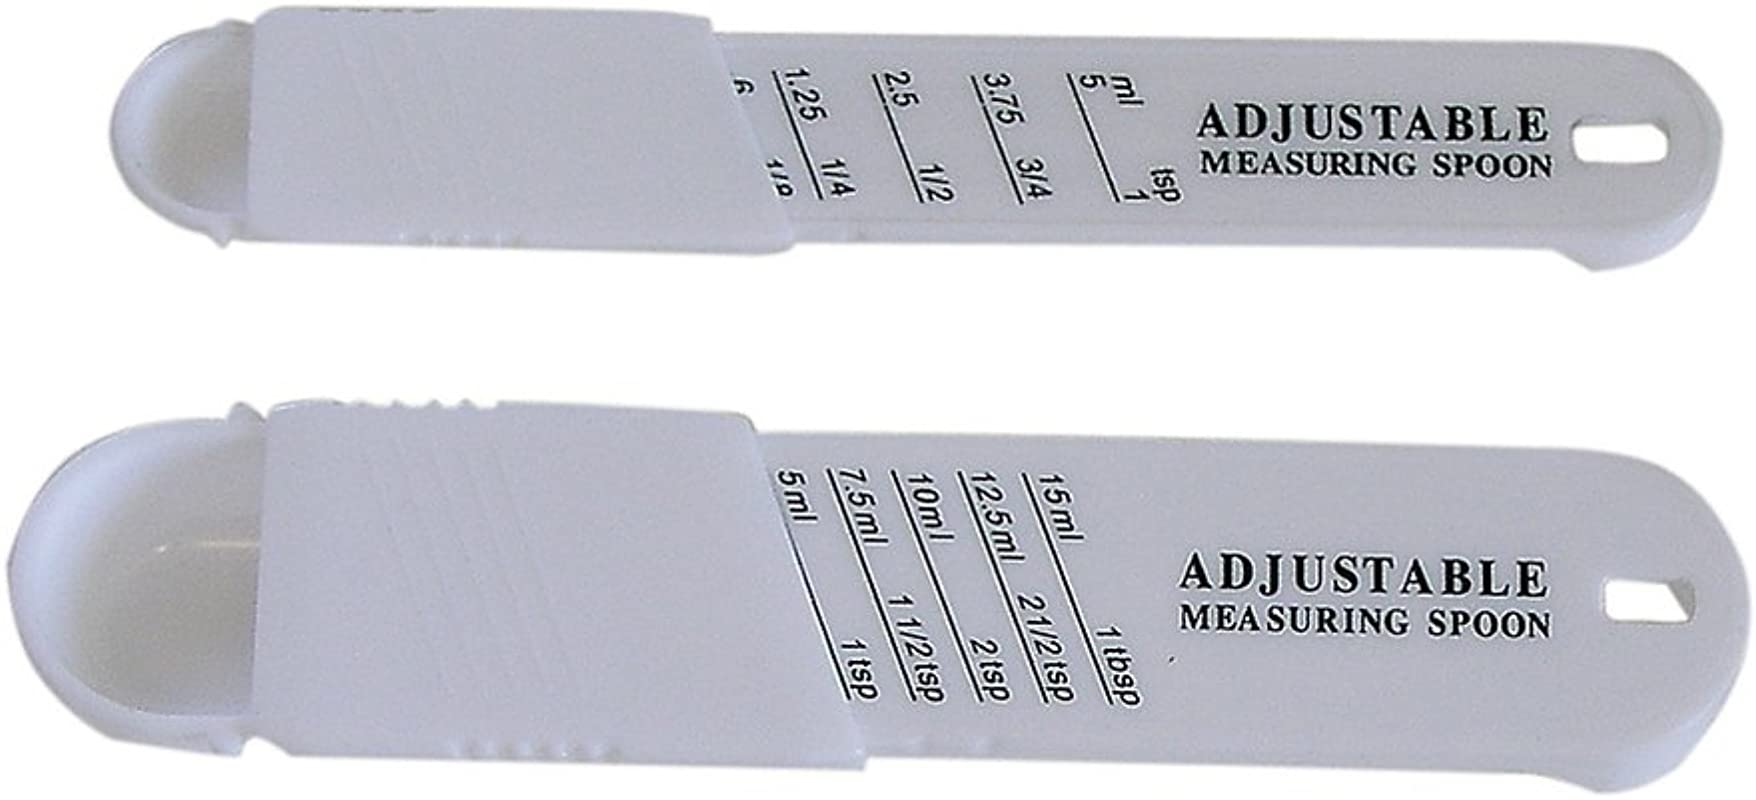 CybrTrayd RM 2632 Adjustable Measuring Spoon 2 Piece Set One Size White